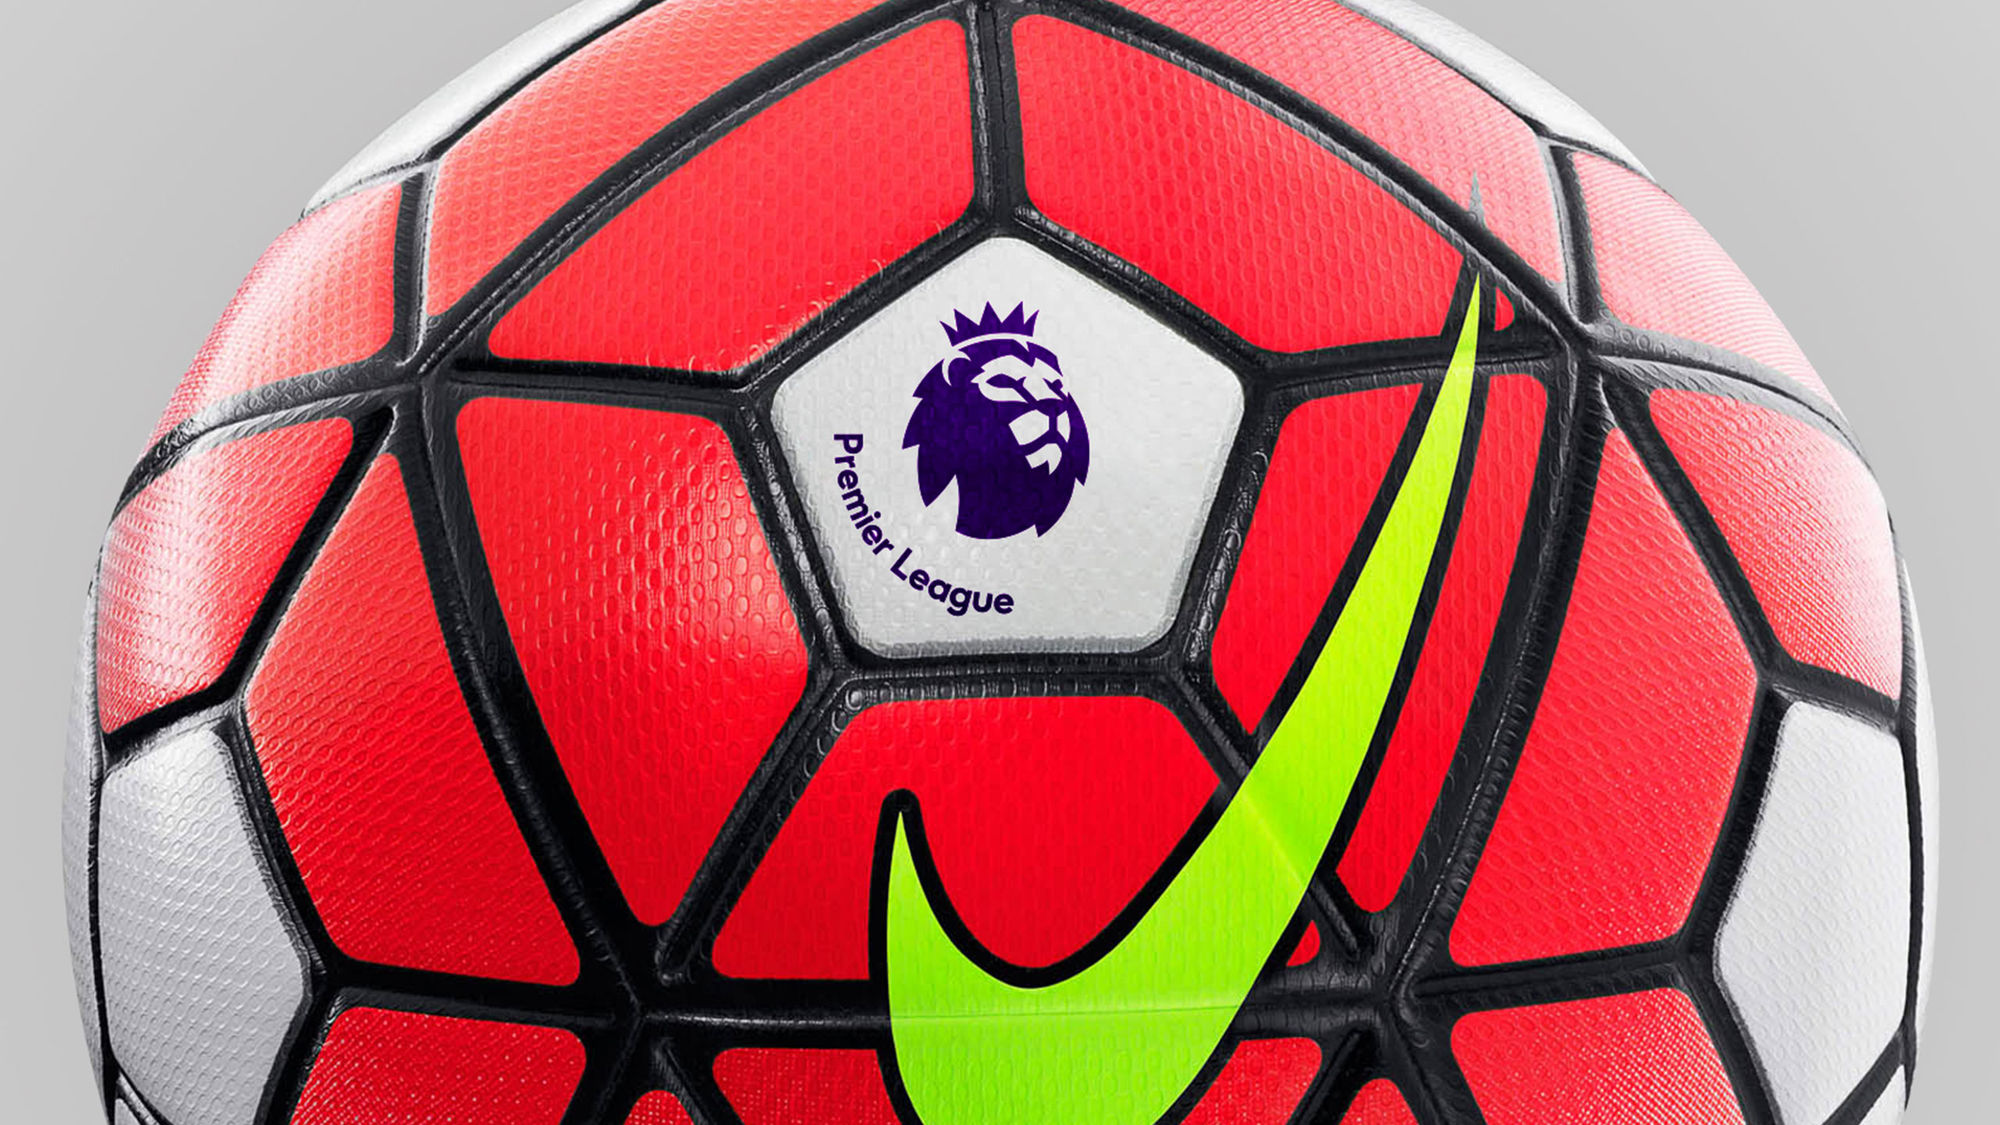 New branding upon the official Premier League match ball .